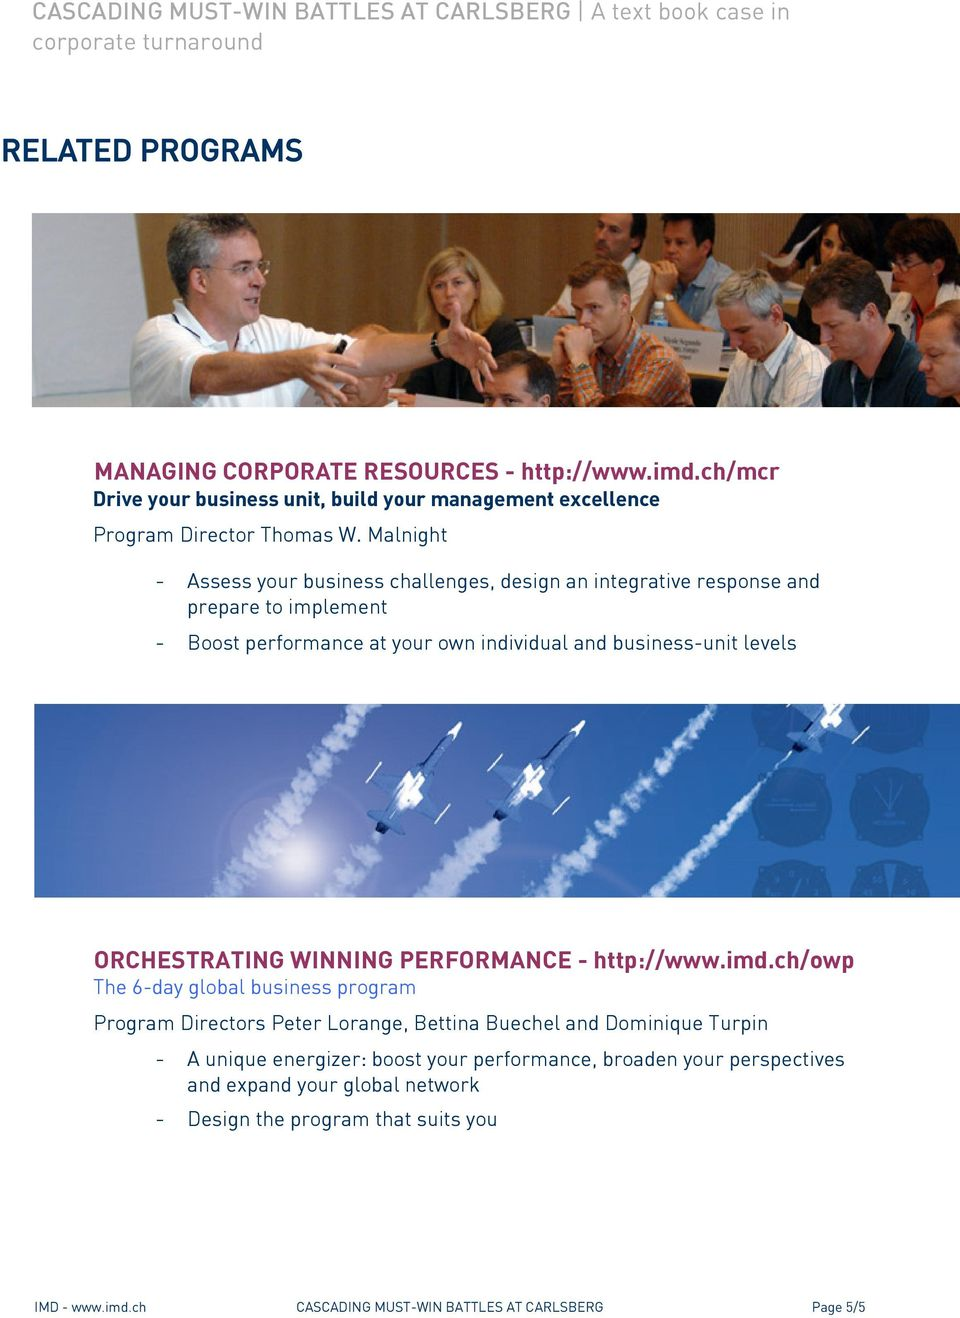 ORCHESTRATING WINNING PERFORMANCE - http://www.imd.